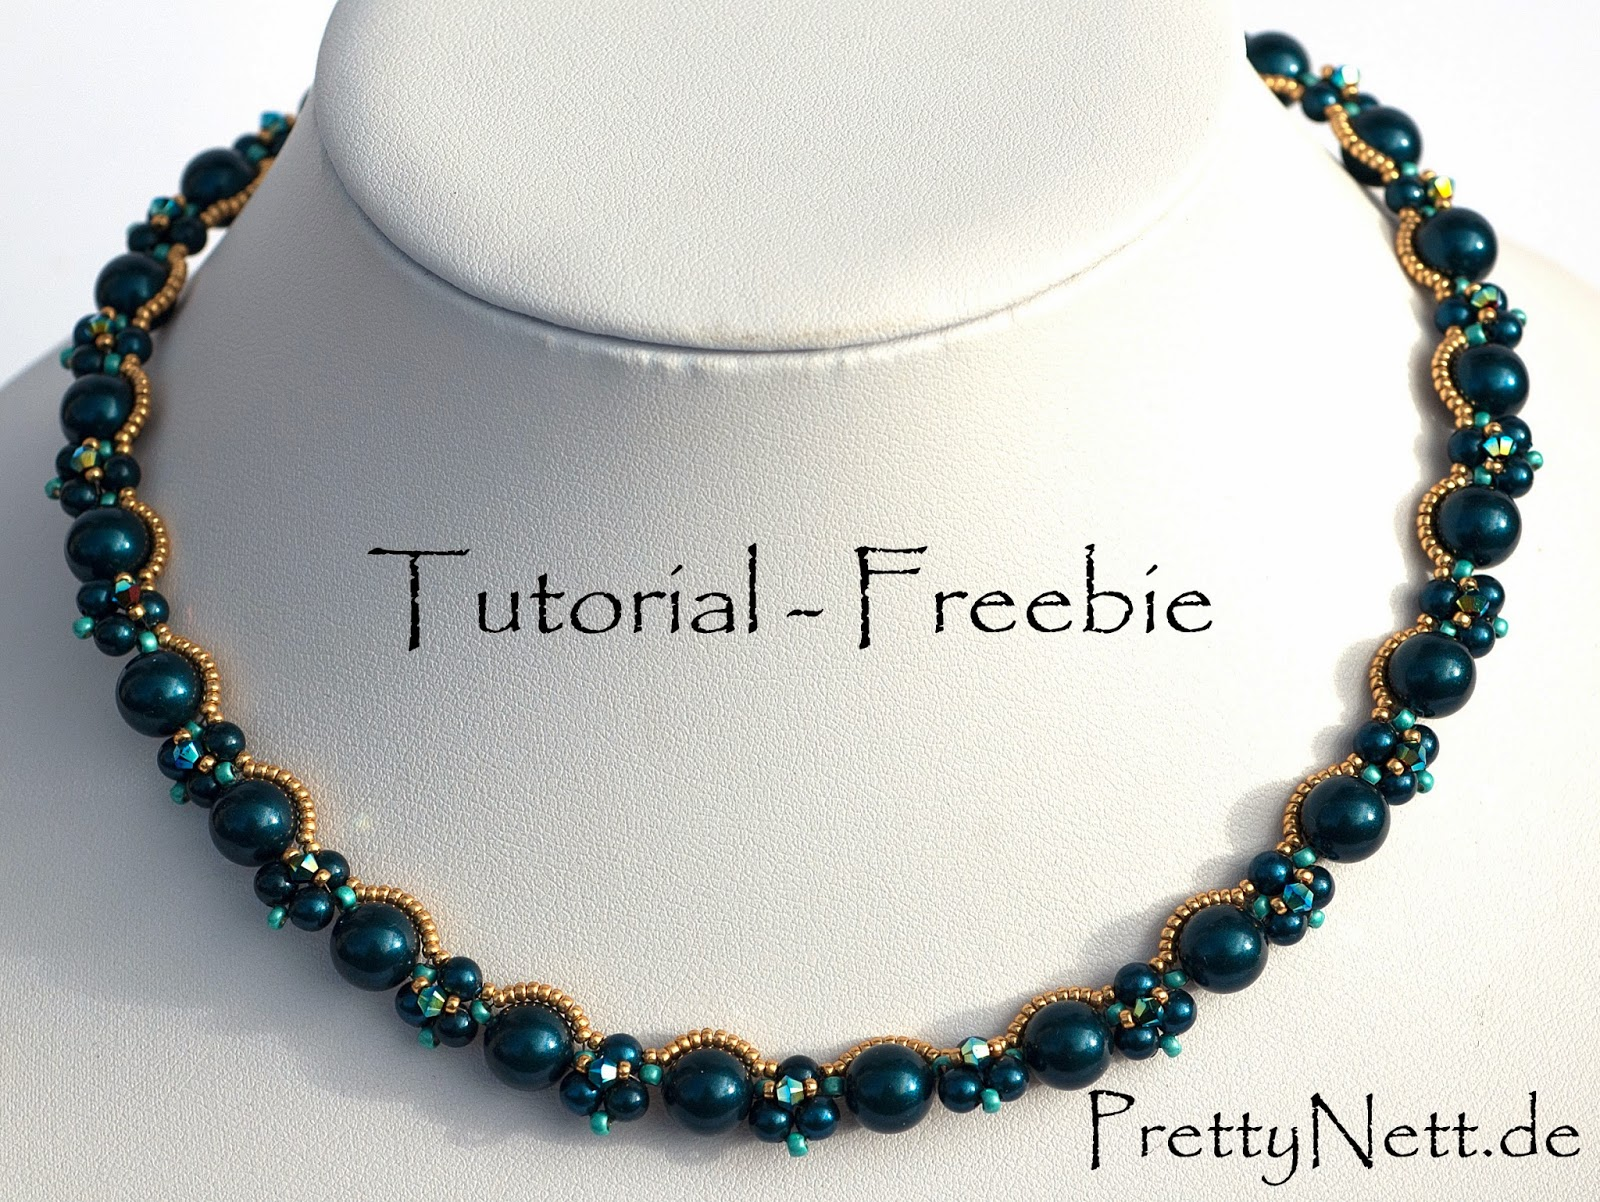 Kette Necklace True Romance Beading Tutorial Freebie